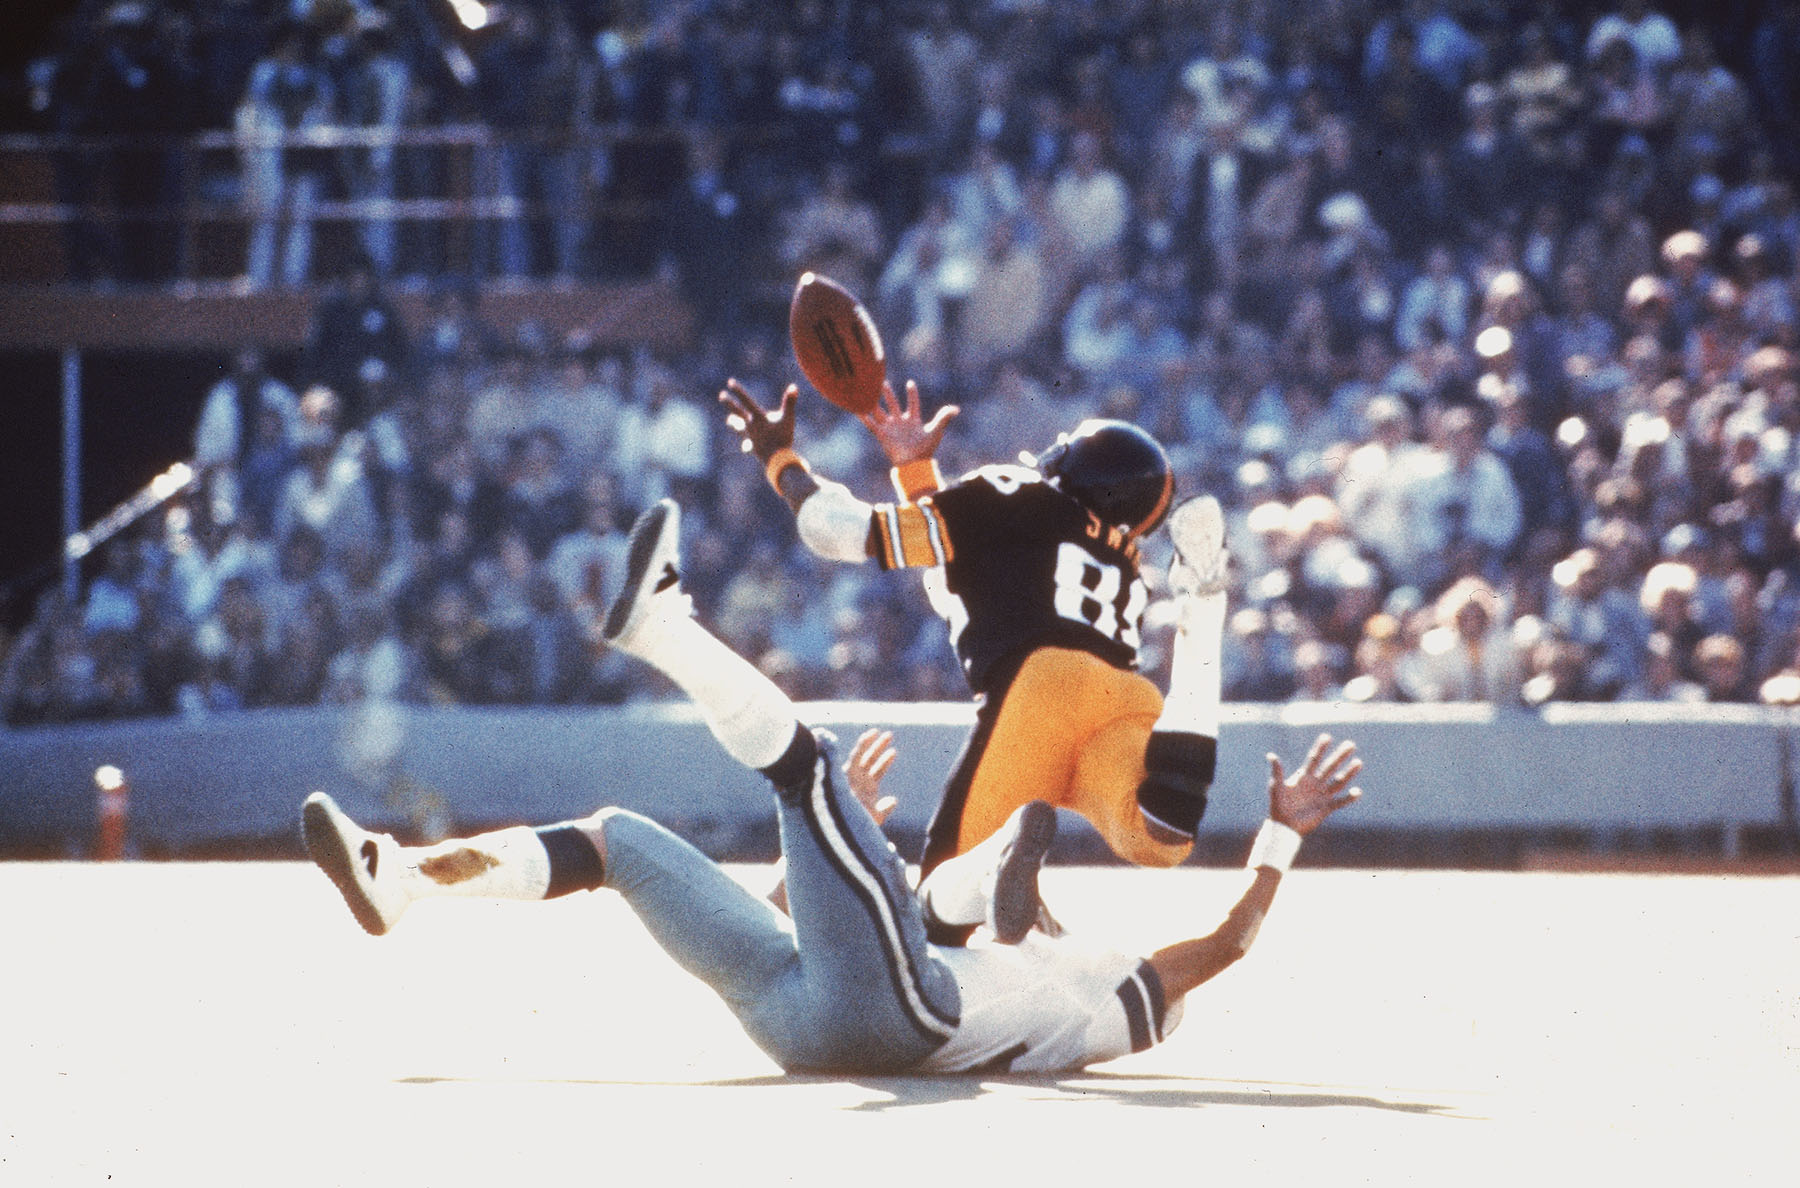 Pittsburgh Steelers Lynn Swann dives as he catches a pass from quarterback Terry Bradshaw during Super Bowl X in Miami, Fla., on Sunday, Jan. 18, 1976. (AP Photo)